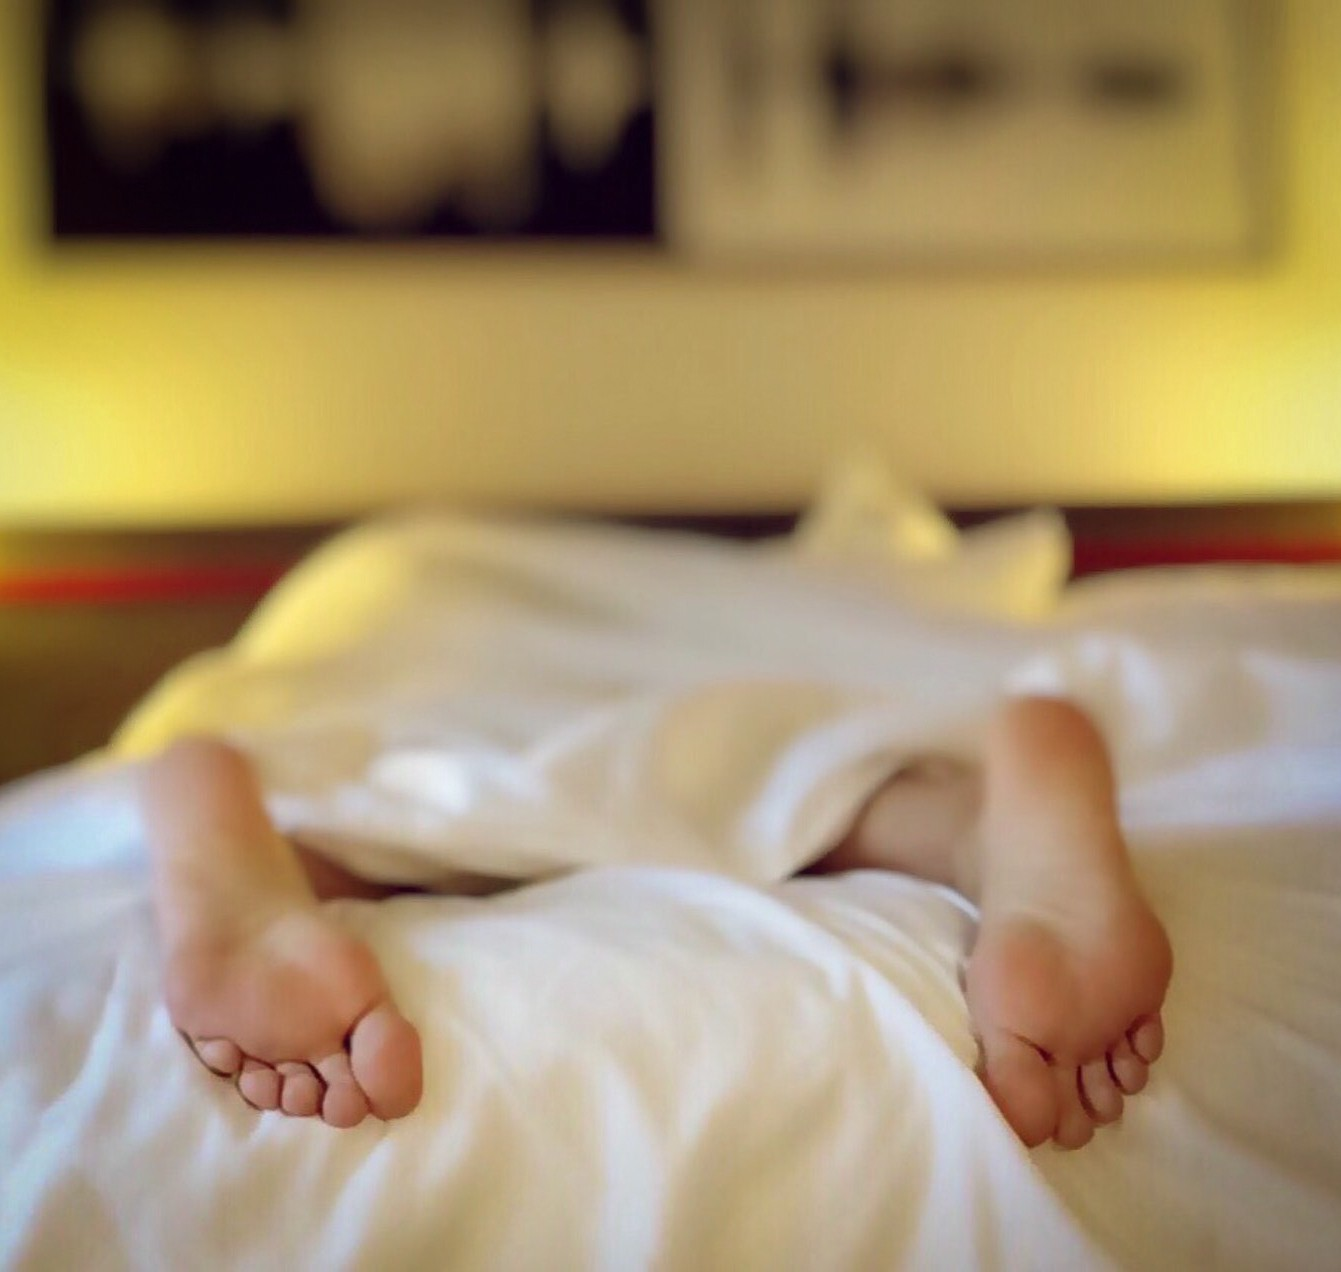 Comatose person in bed. All we see are their soles, pointed down. They are out of it!